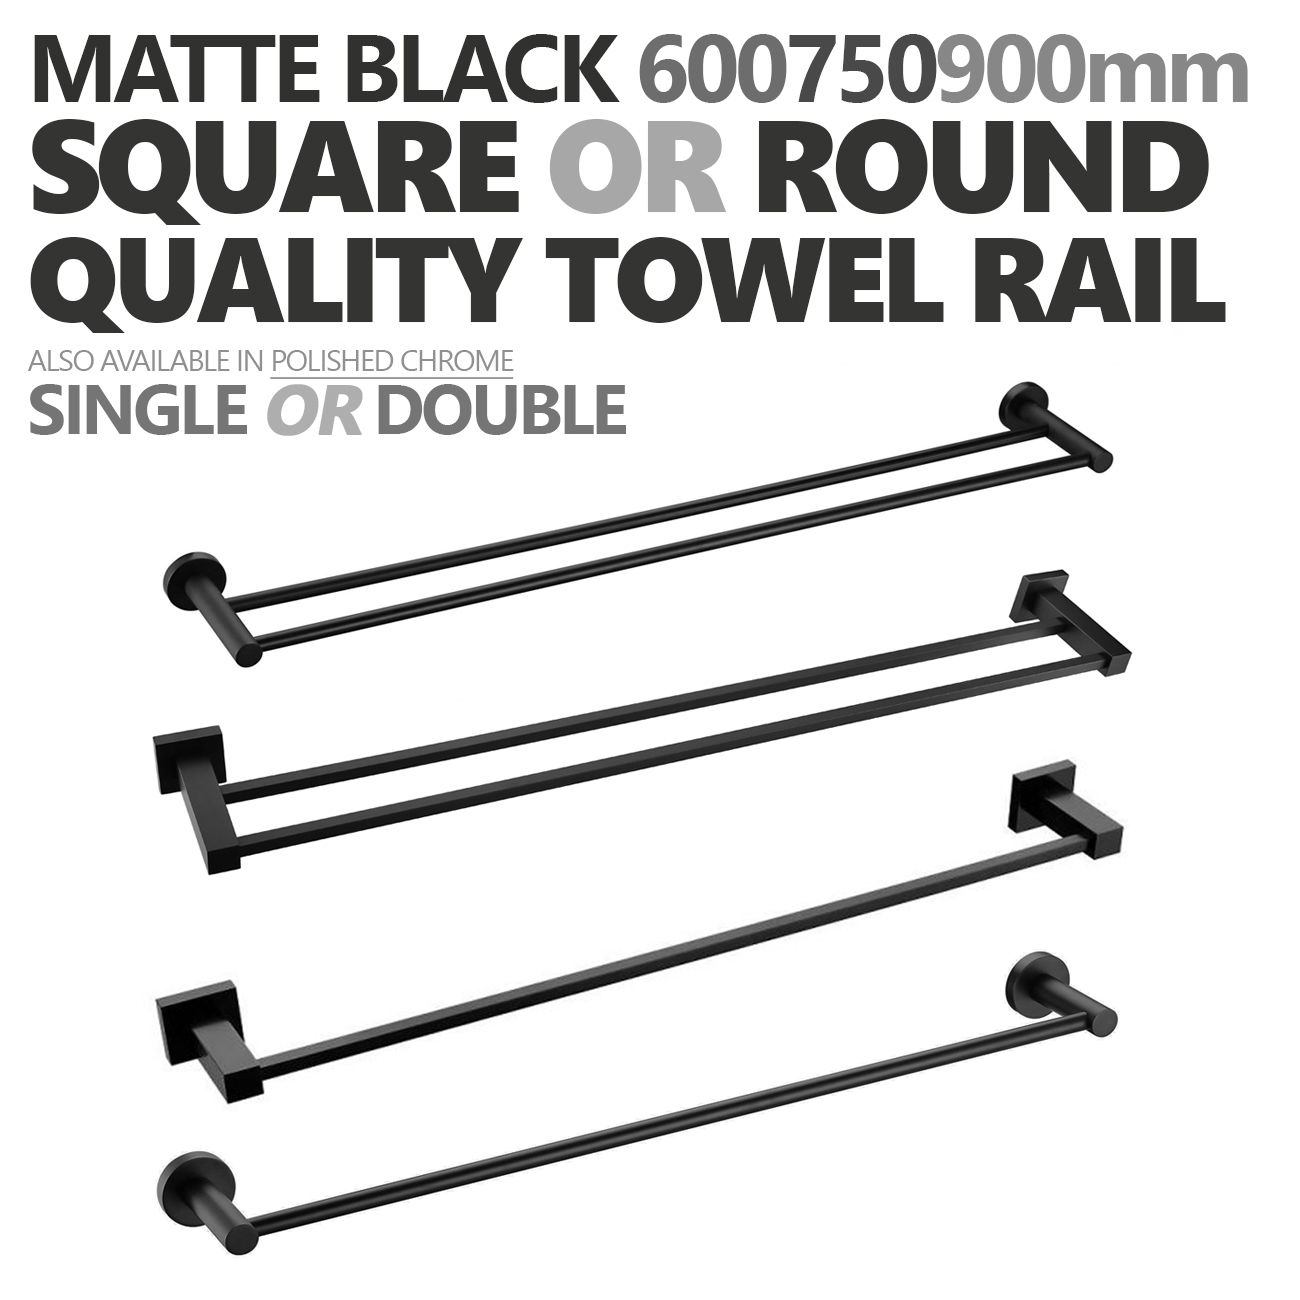 Luxe Mirage Round Or Square Matte Black Bathroom Towel Rail Single Double